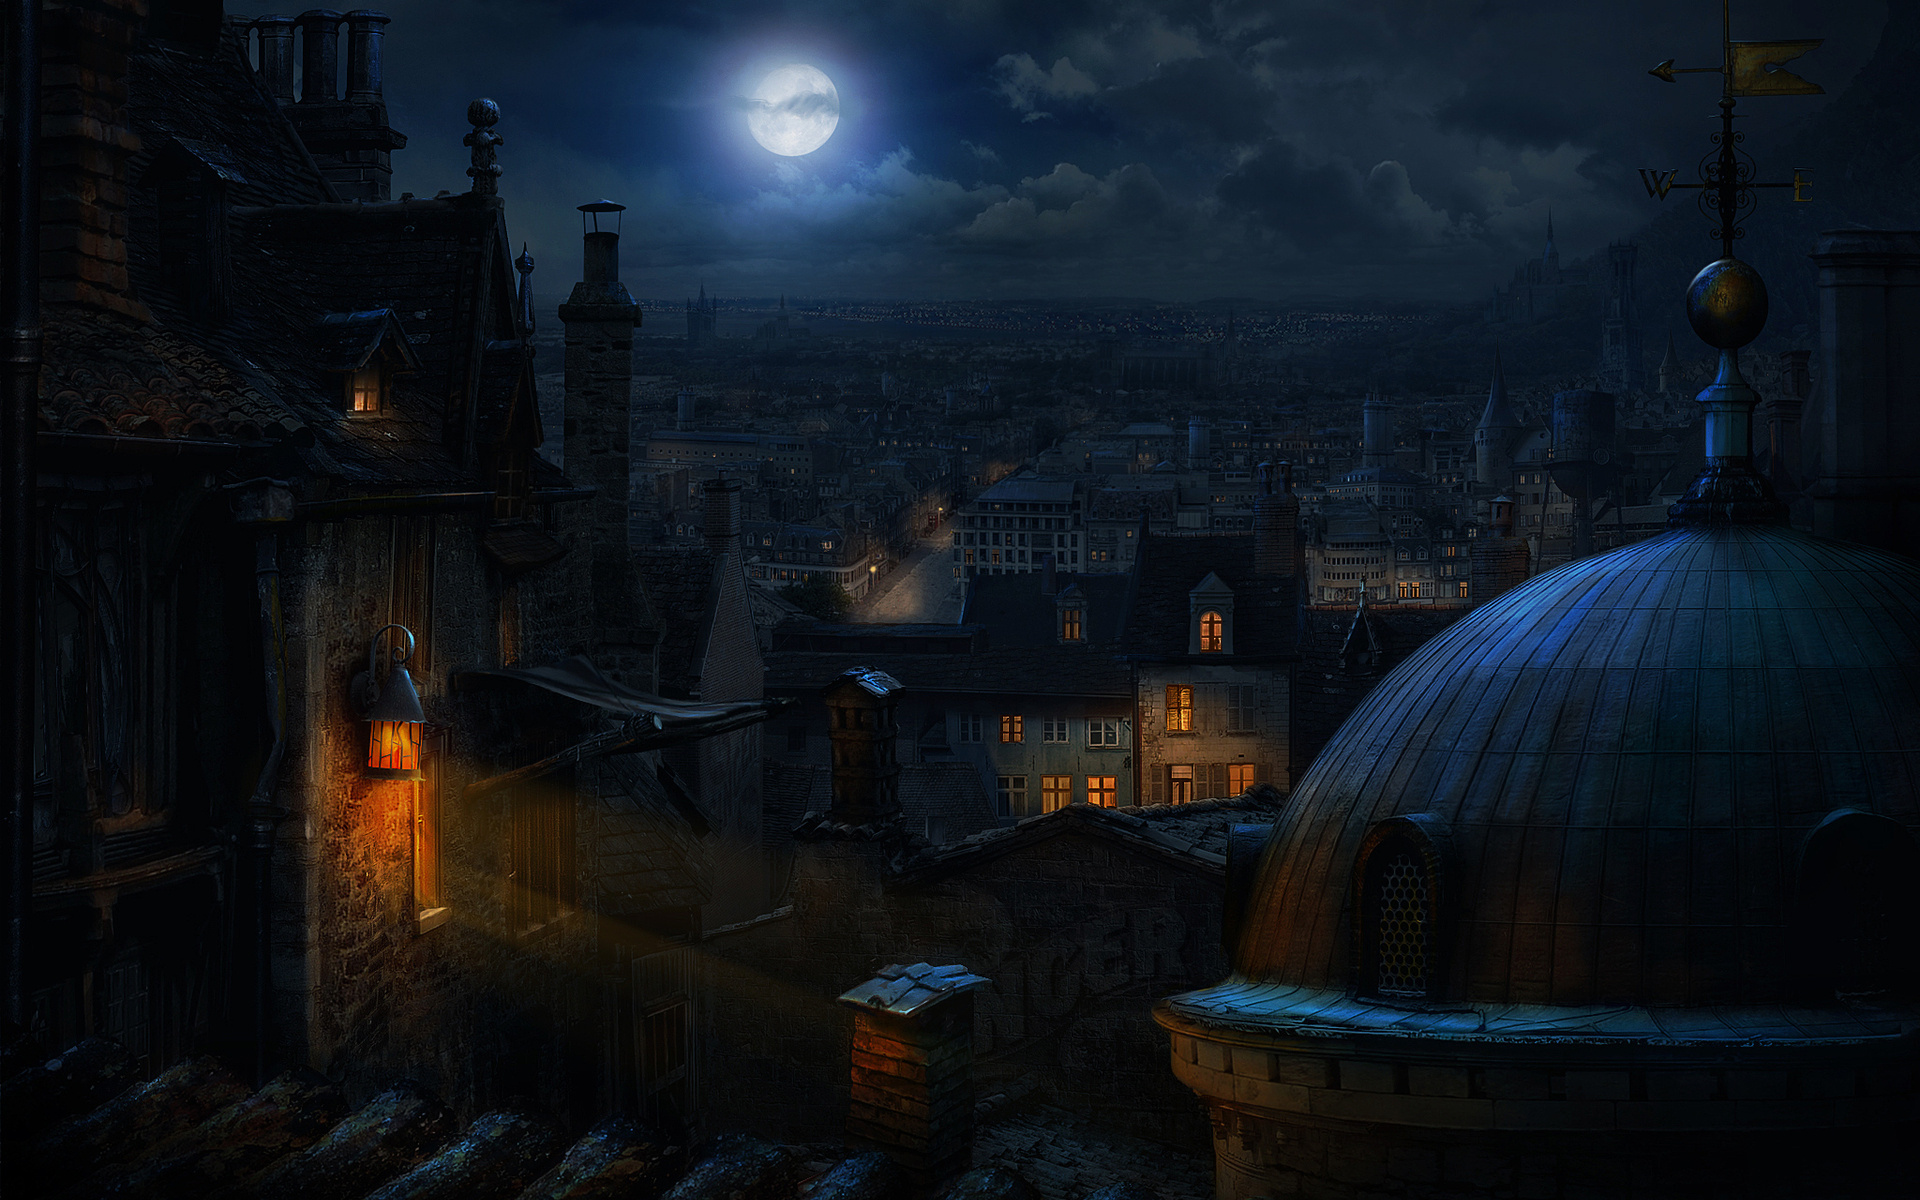 fantasy-city-at-night.jpg